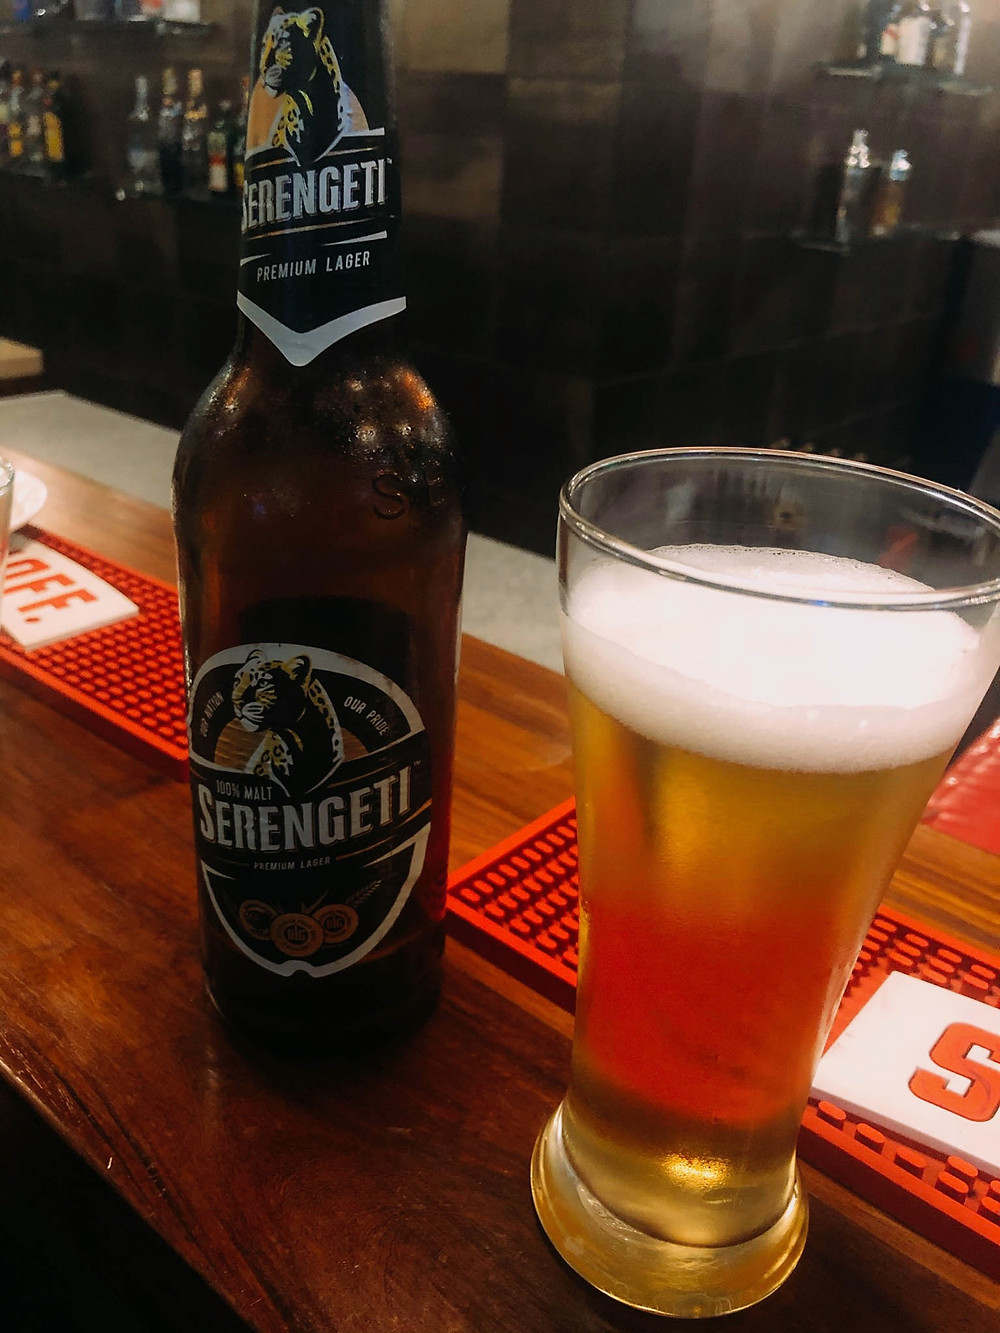 Not a craft brewery, per se, but Serengeti's a great drink in Tanzania!